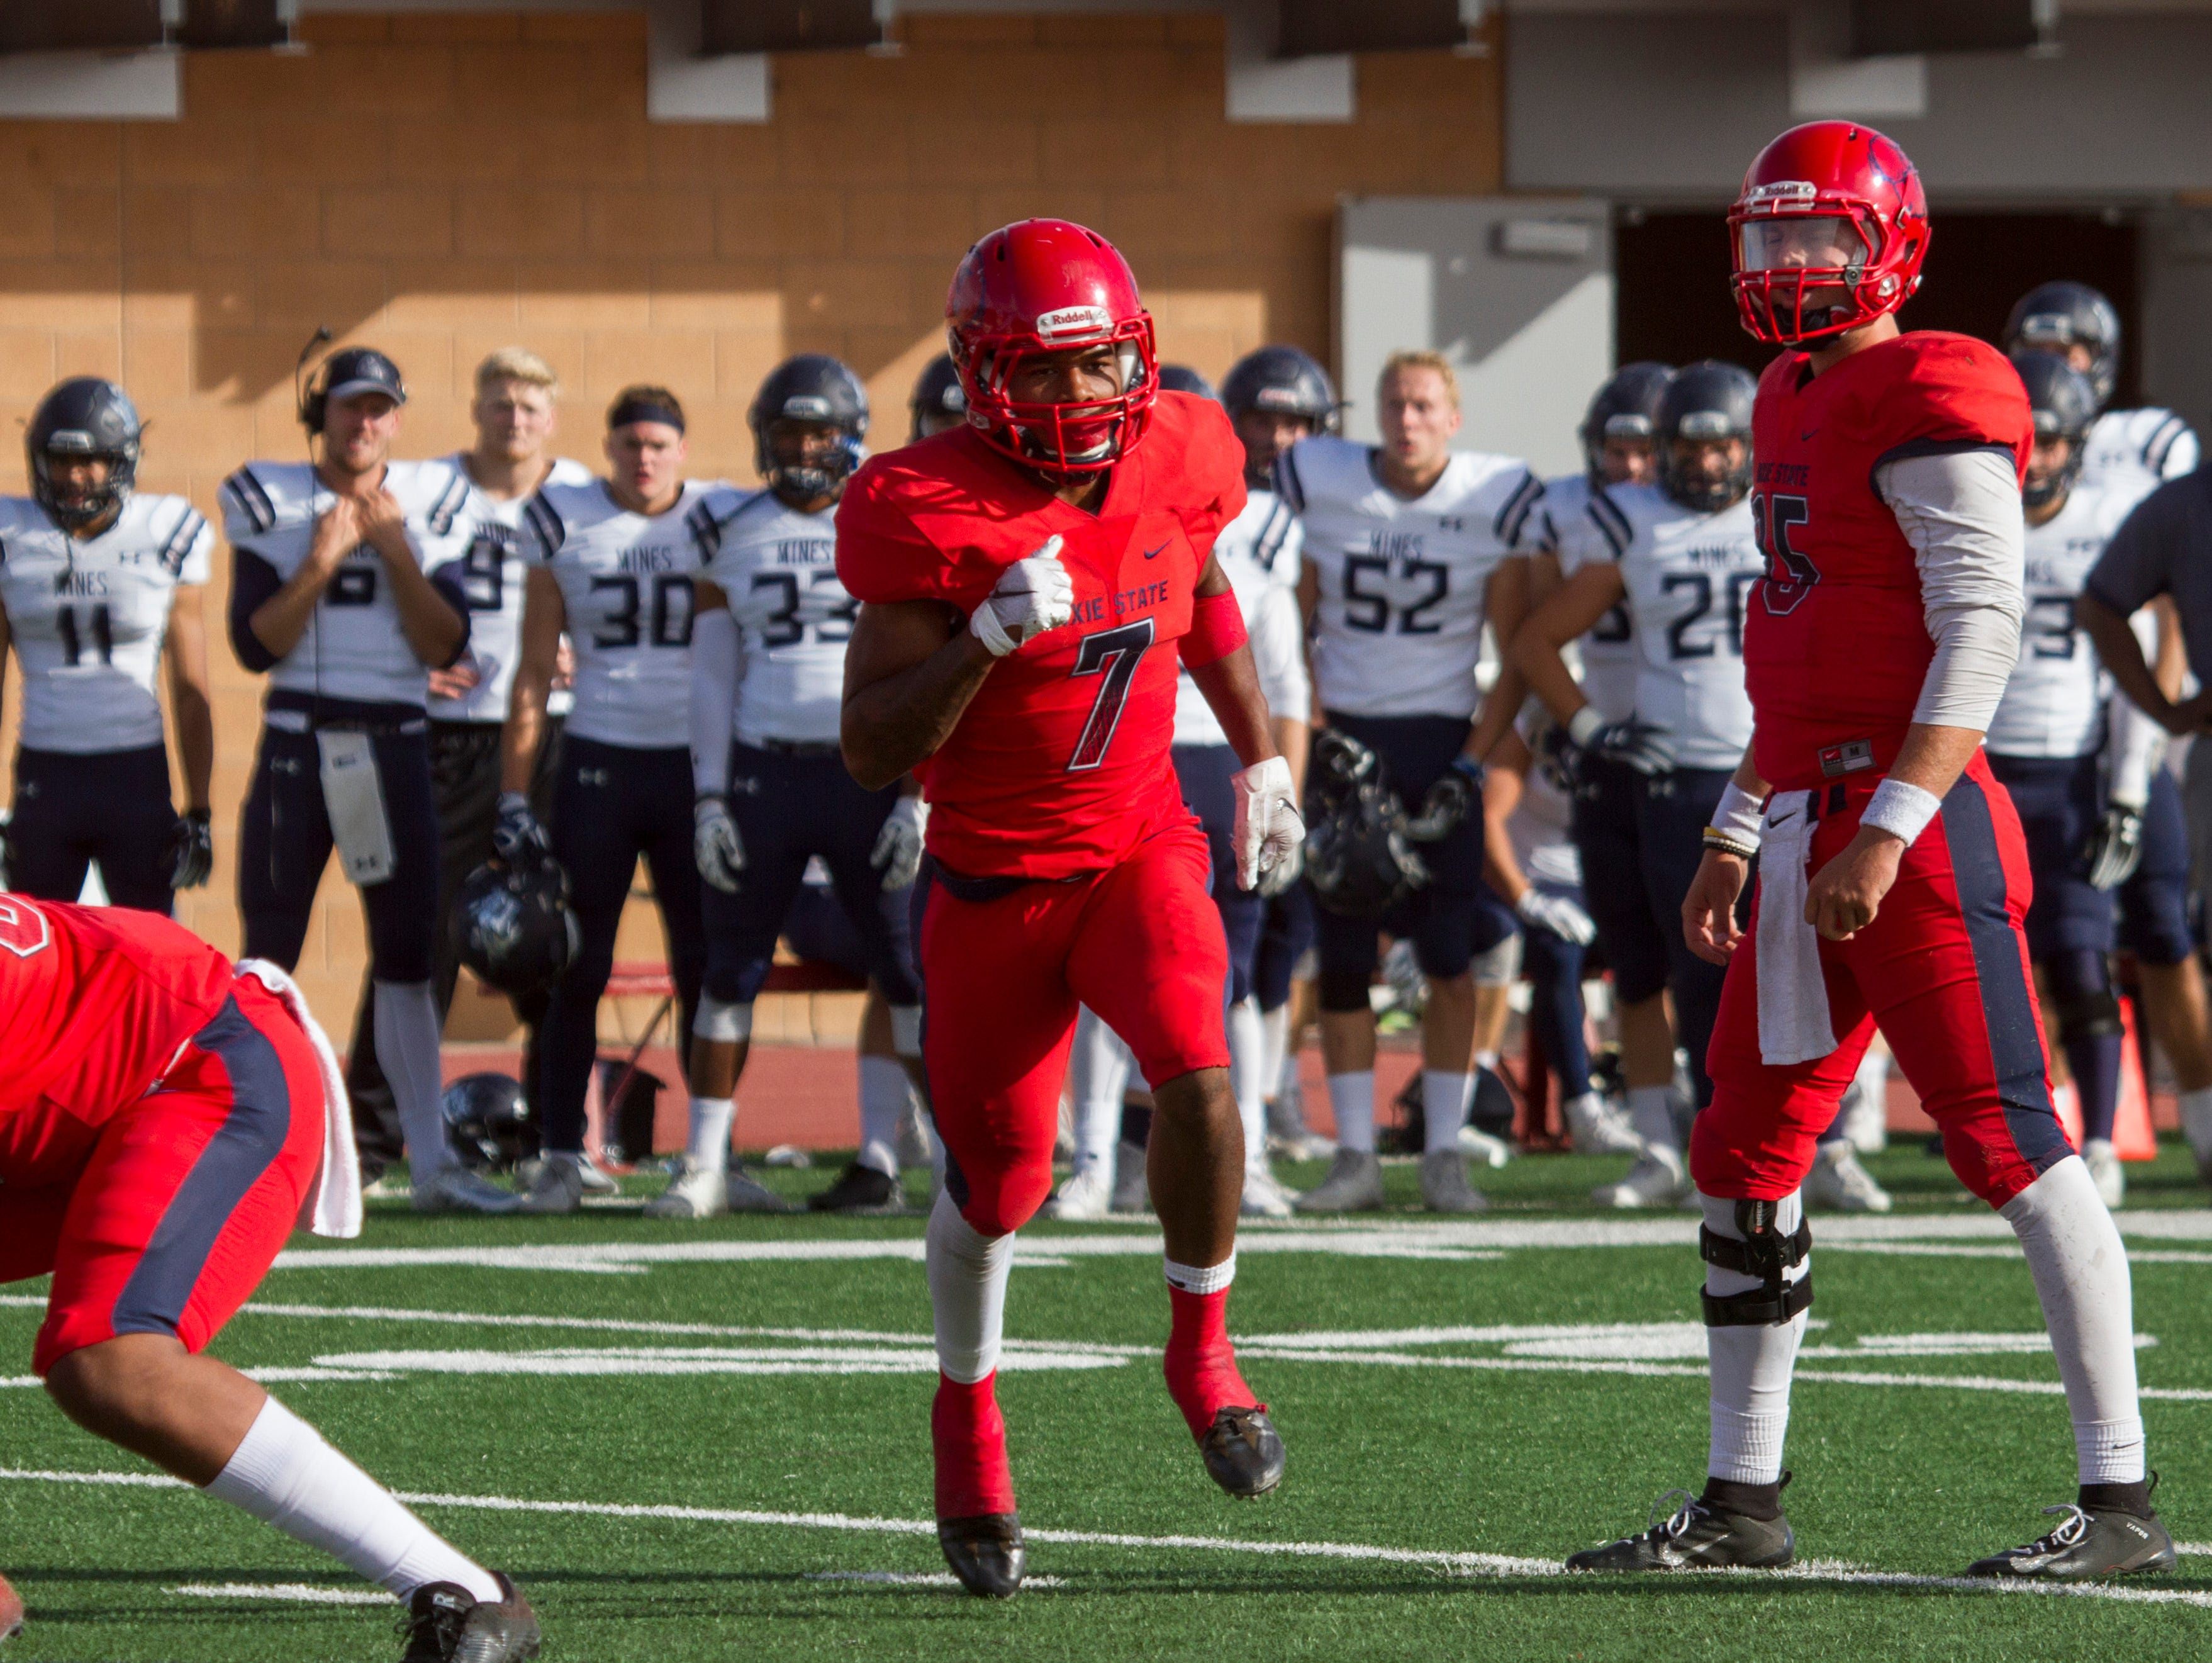 Wide receiver Dejuan Dantzler caught caught 11 balls for 241 yards in Dixie State's game against Colorado School of Mines on Saturday, Nov. 3, 2018.